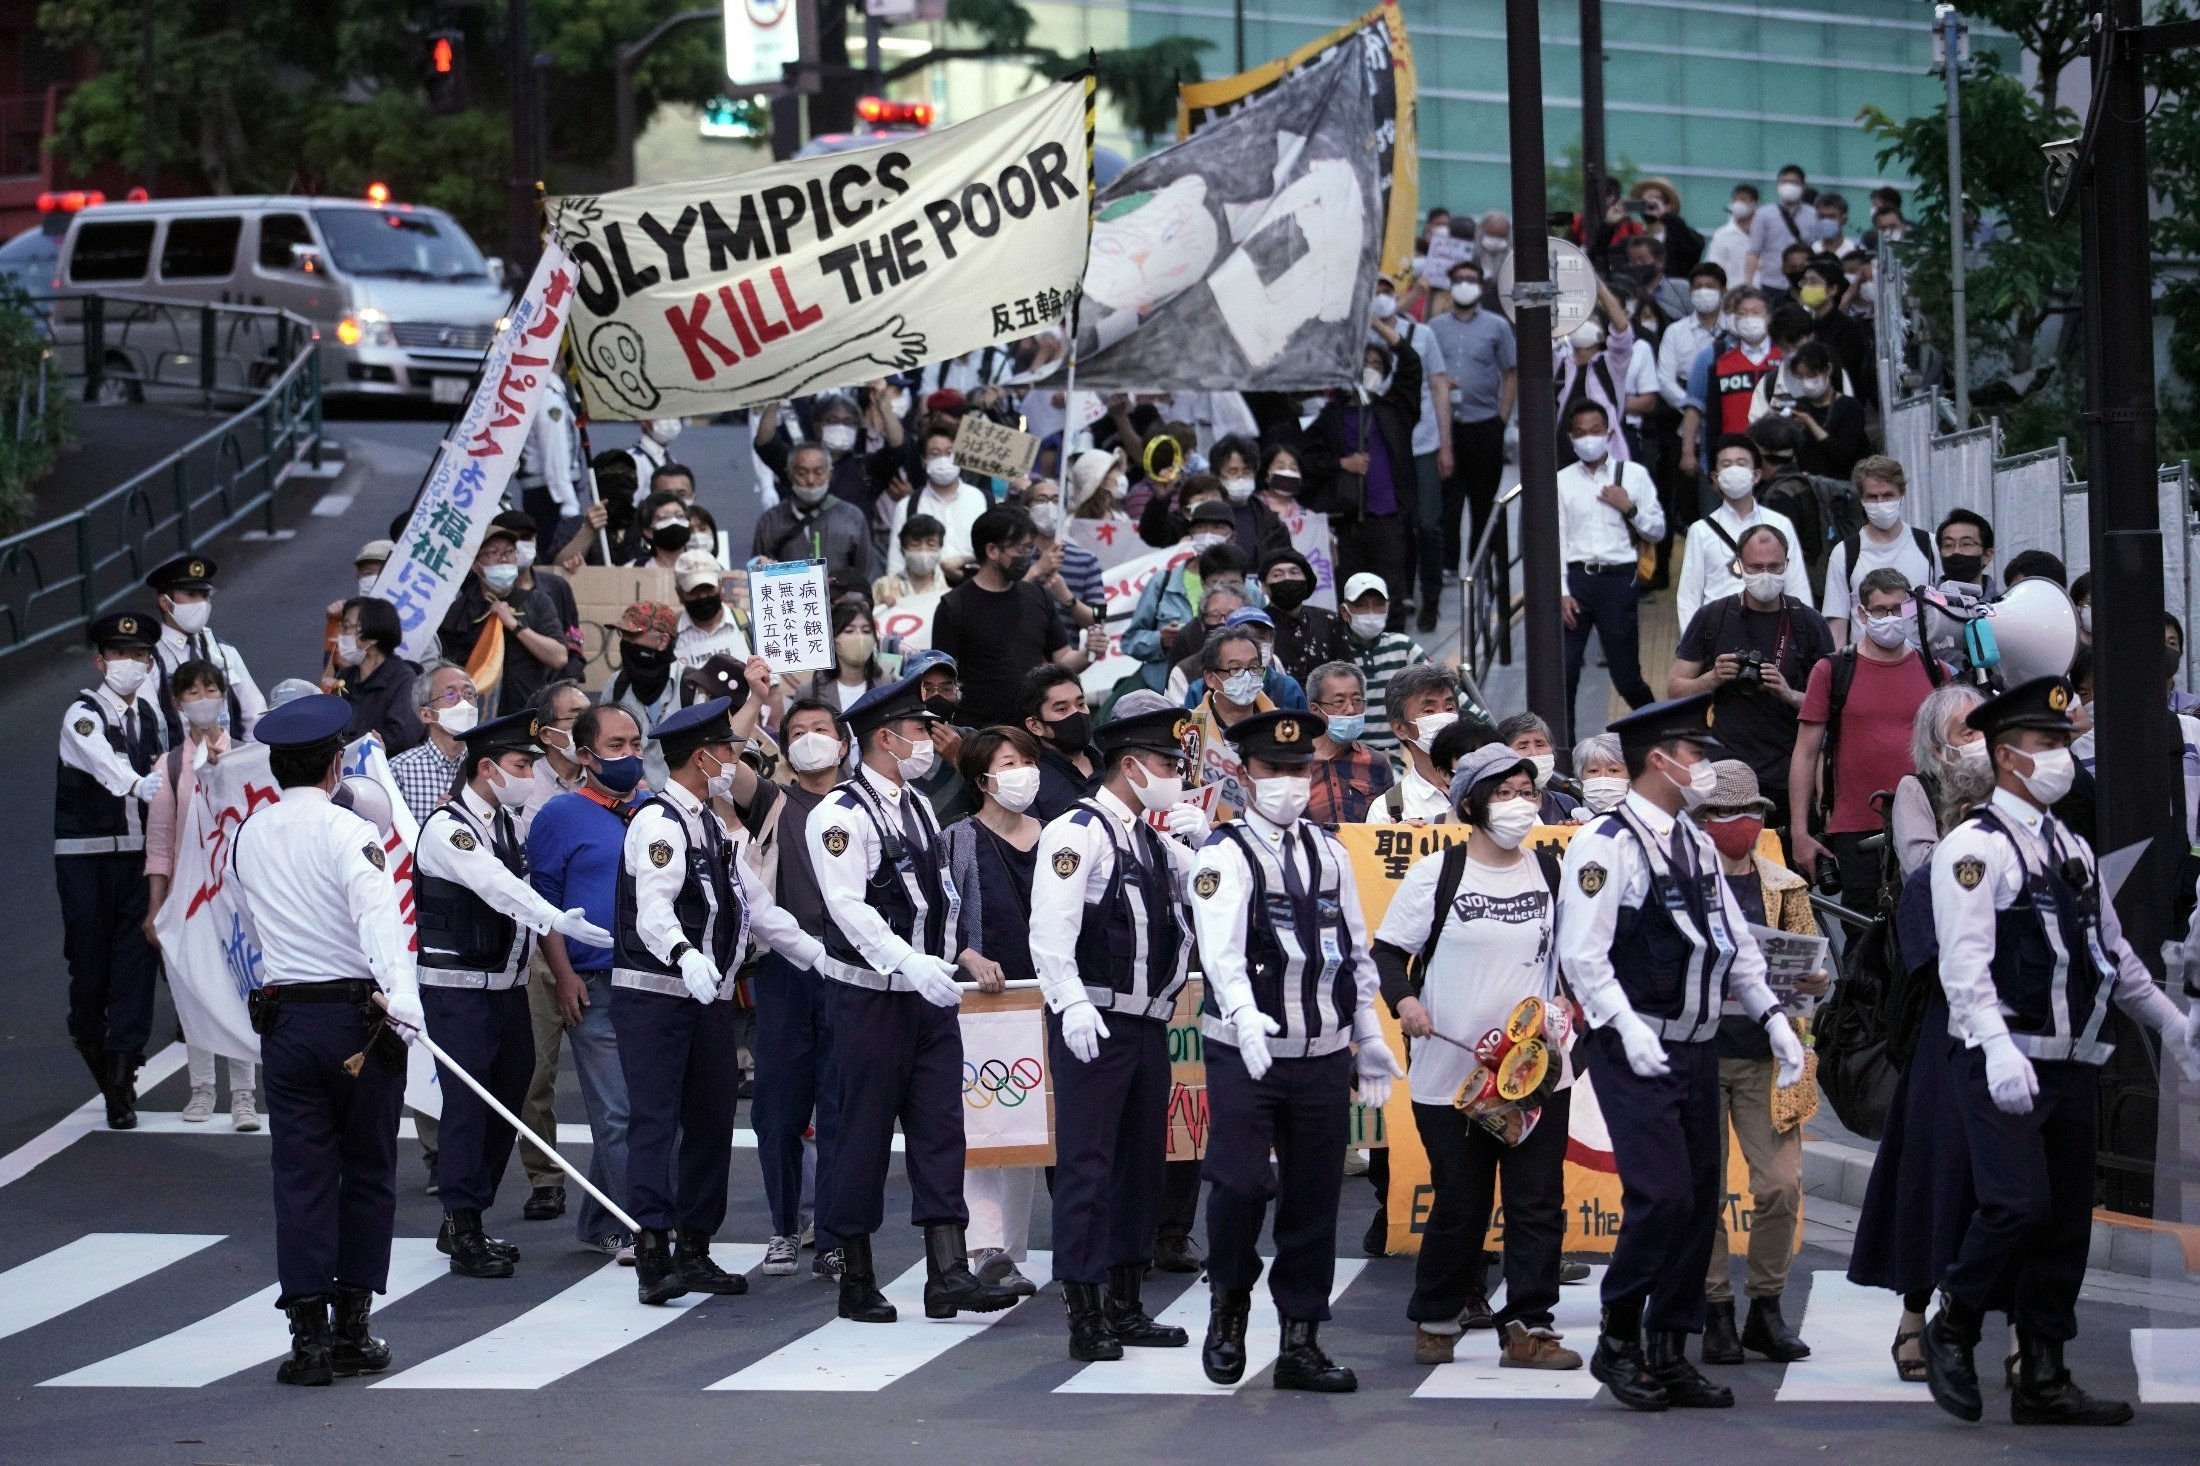 People against the Tokyo 2020 Olympics set to open in July, march to protest around Tokyo's National Stadium during an anti-Olympics demonstration, Tokyo, Japan, May 9, 2021. (AP Photo)